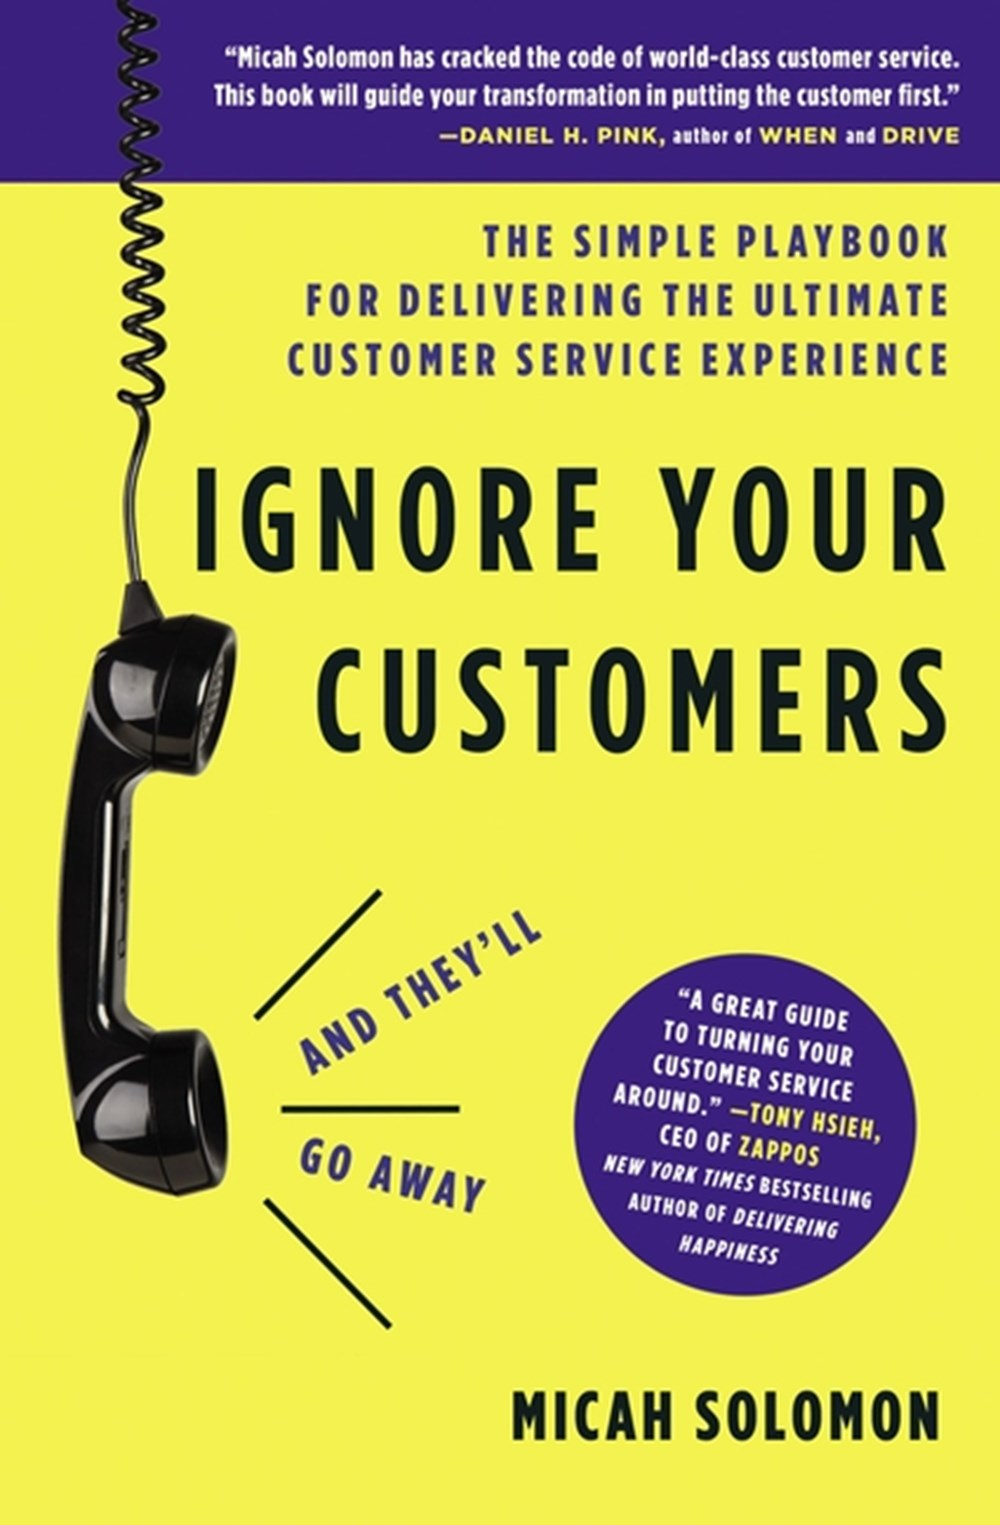 Ignore Your Customers (and They'll Go Away): The Simple Playbook for Delivering the Ultimate Custome